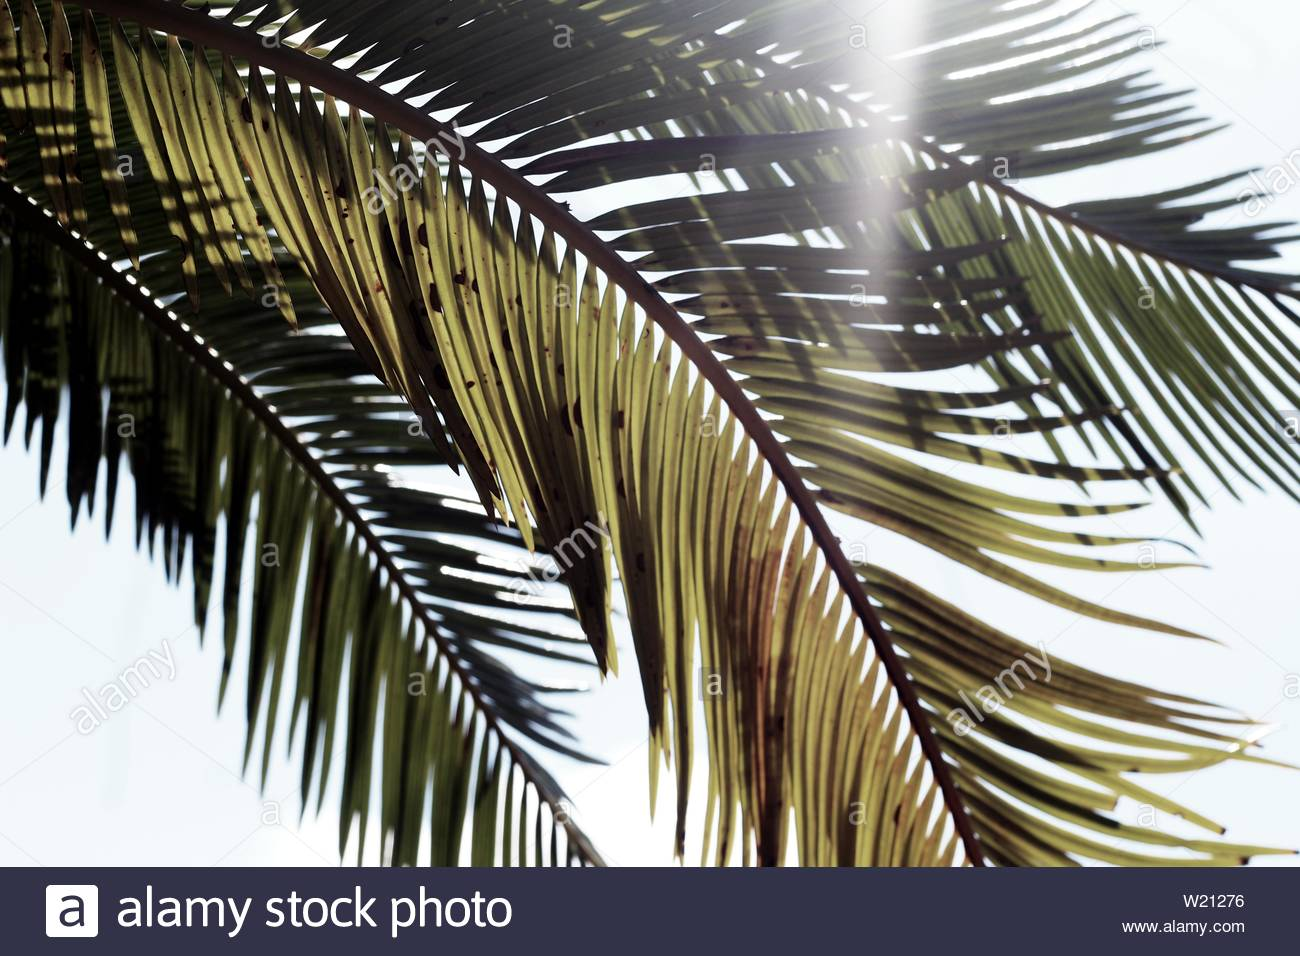 Sunlight streaming through a bunch of palm fronds - Stock Image